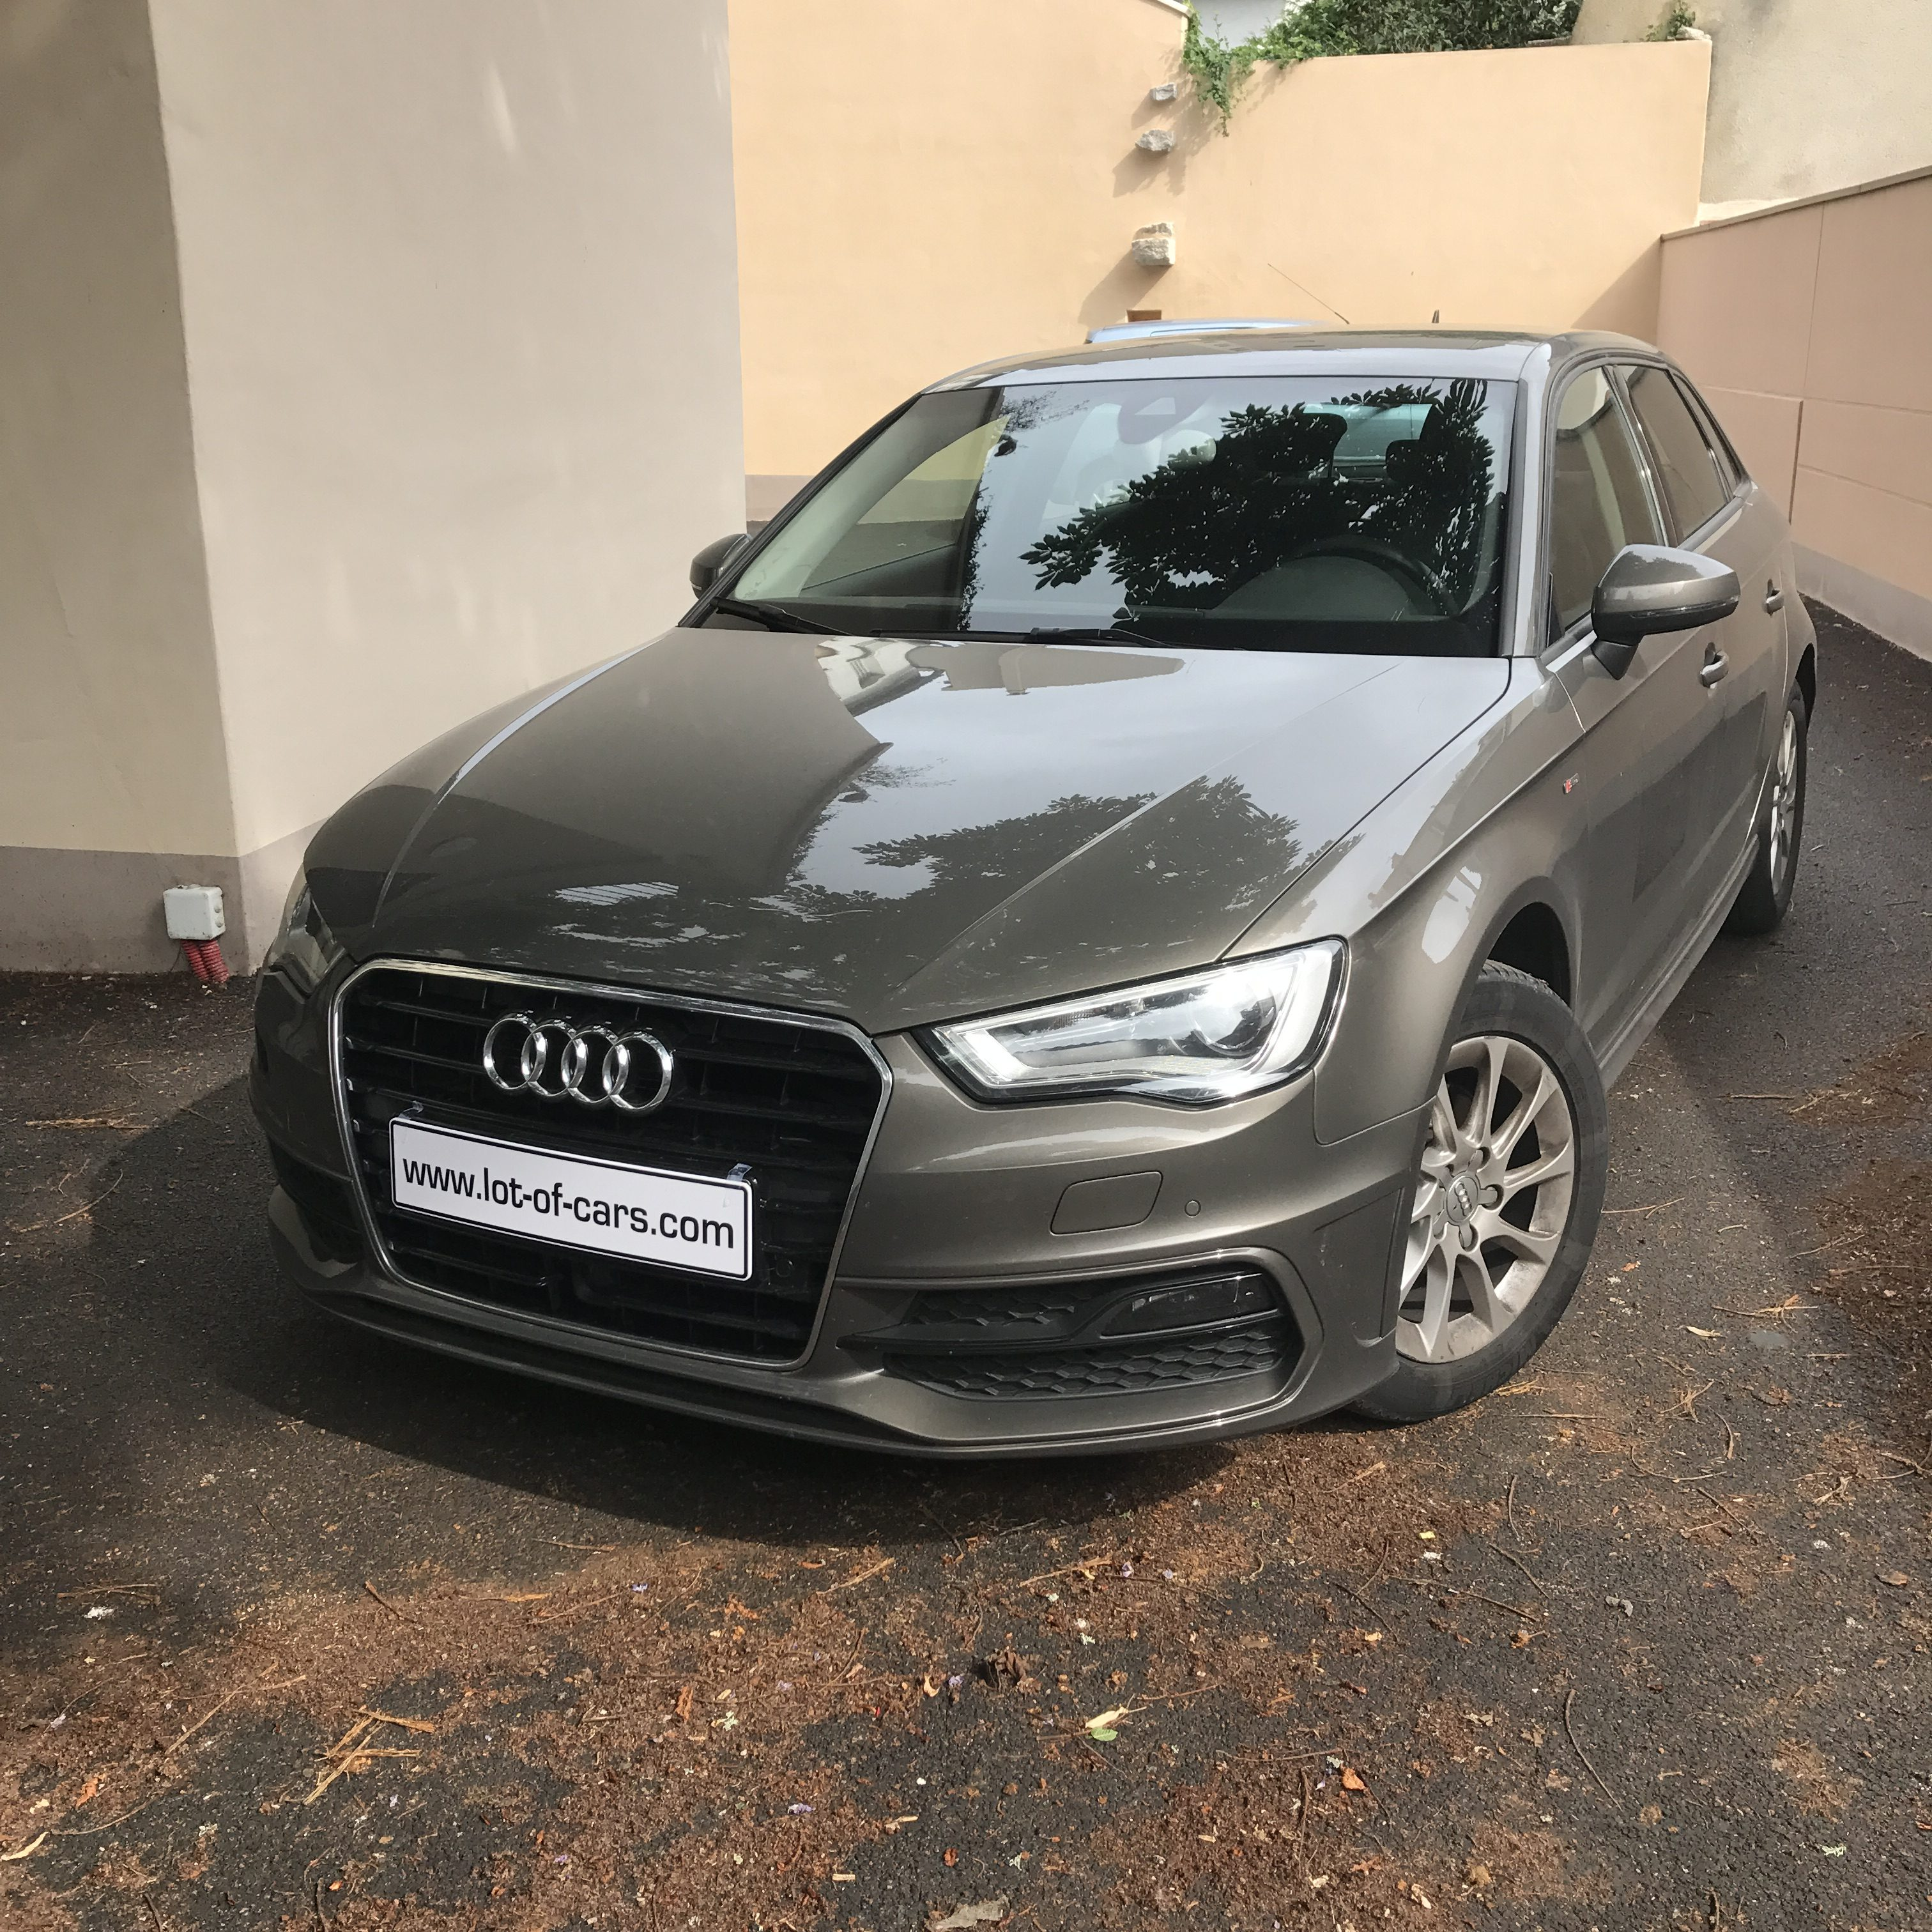 audi a3 sportback 2 0tdi 150cv s line s tronic 6 vendue lot of cars. Black Bedroom Furniture Sets. Home Design Ideas